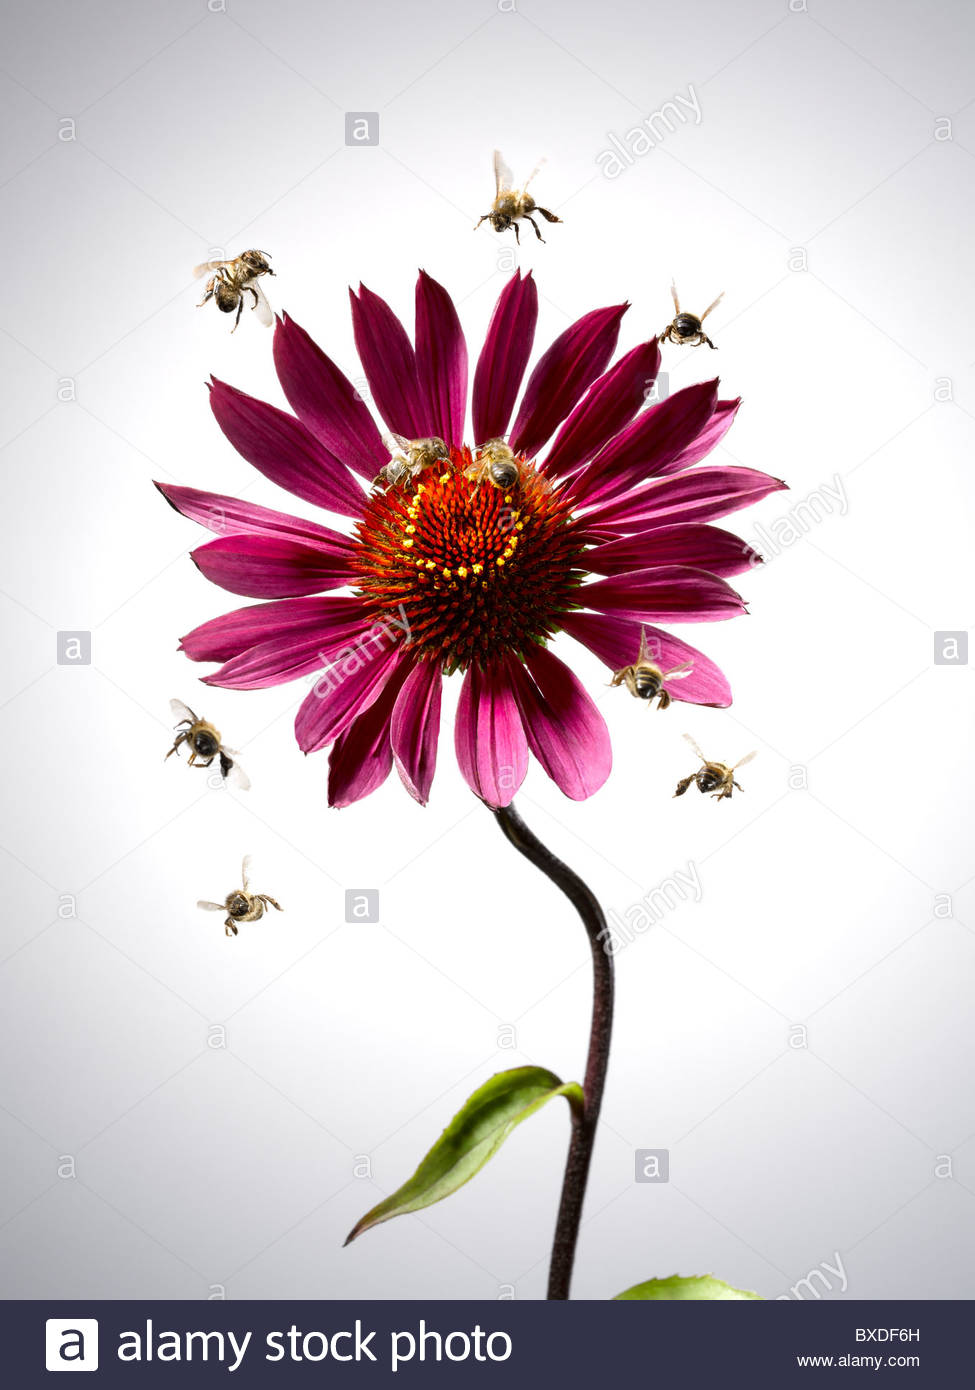 Bees flying around blooming flower Stock Photo: 33488745 - Alamy